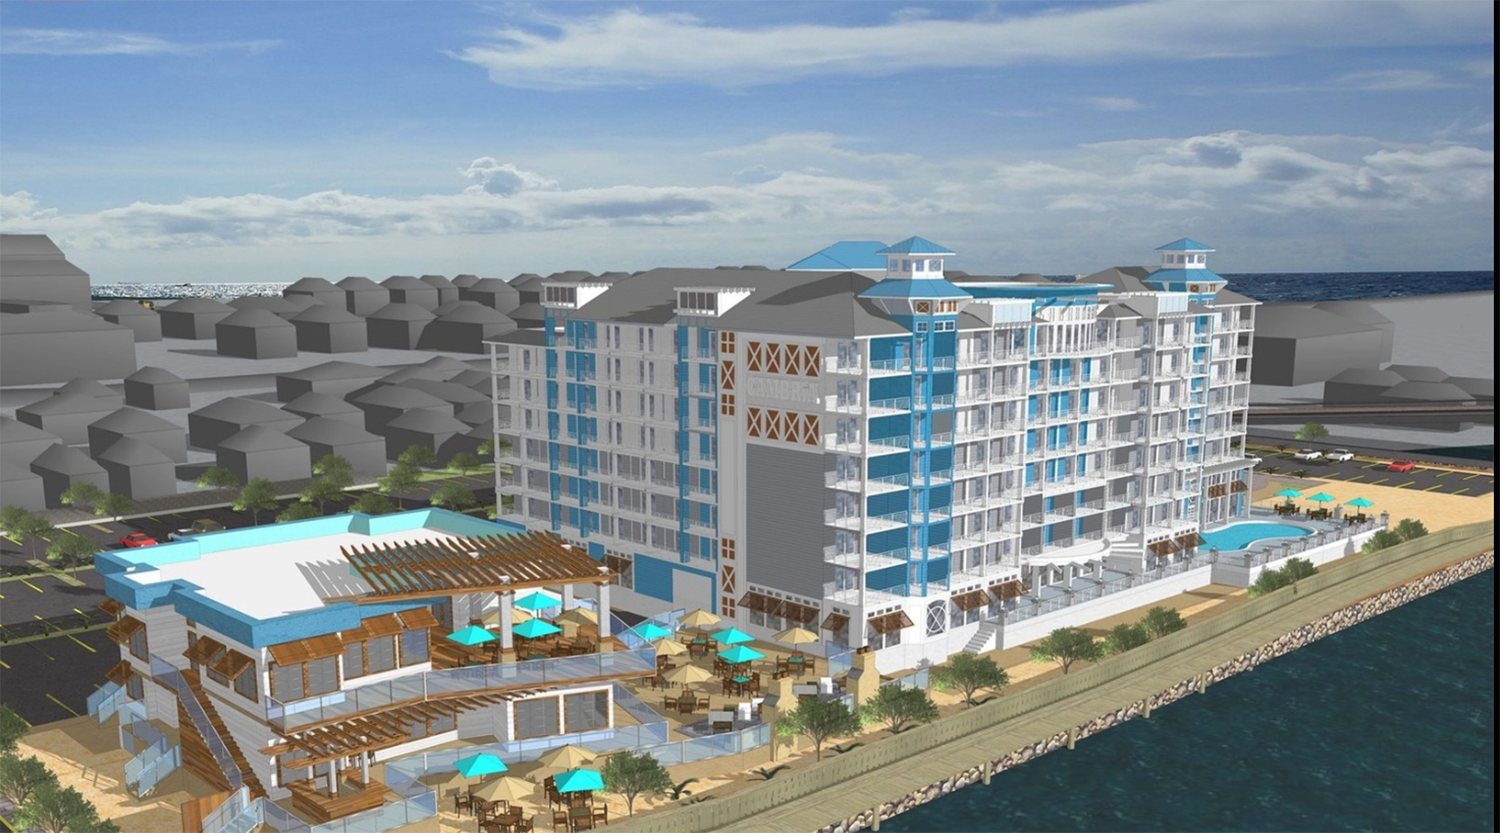 Hotels In Ocean City Md >> 02 19 2018 Downtown Hotel Project Officially Underway